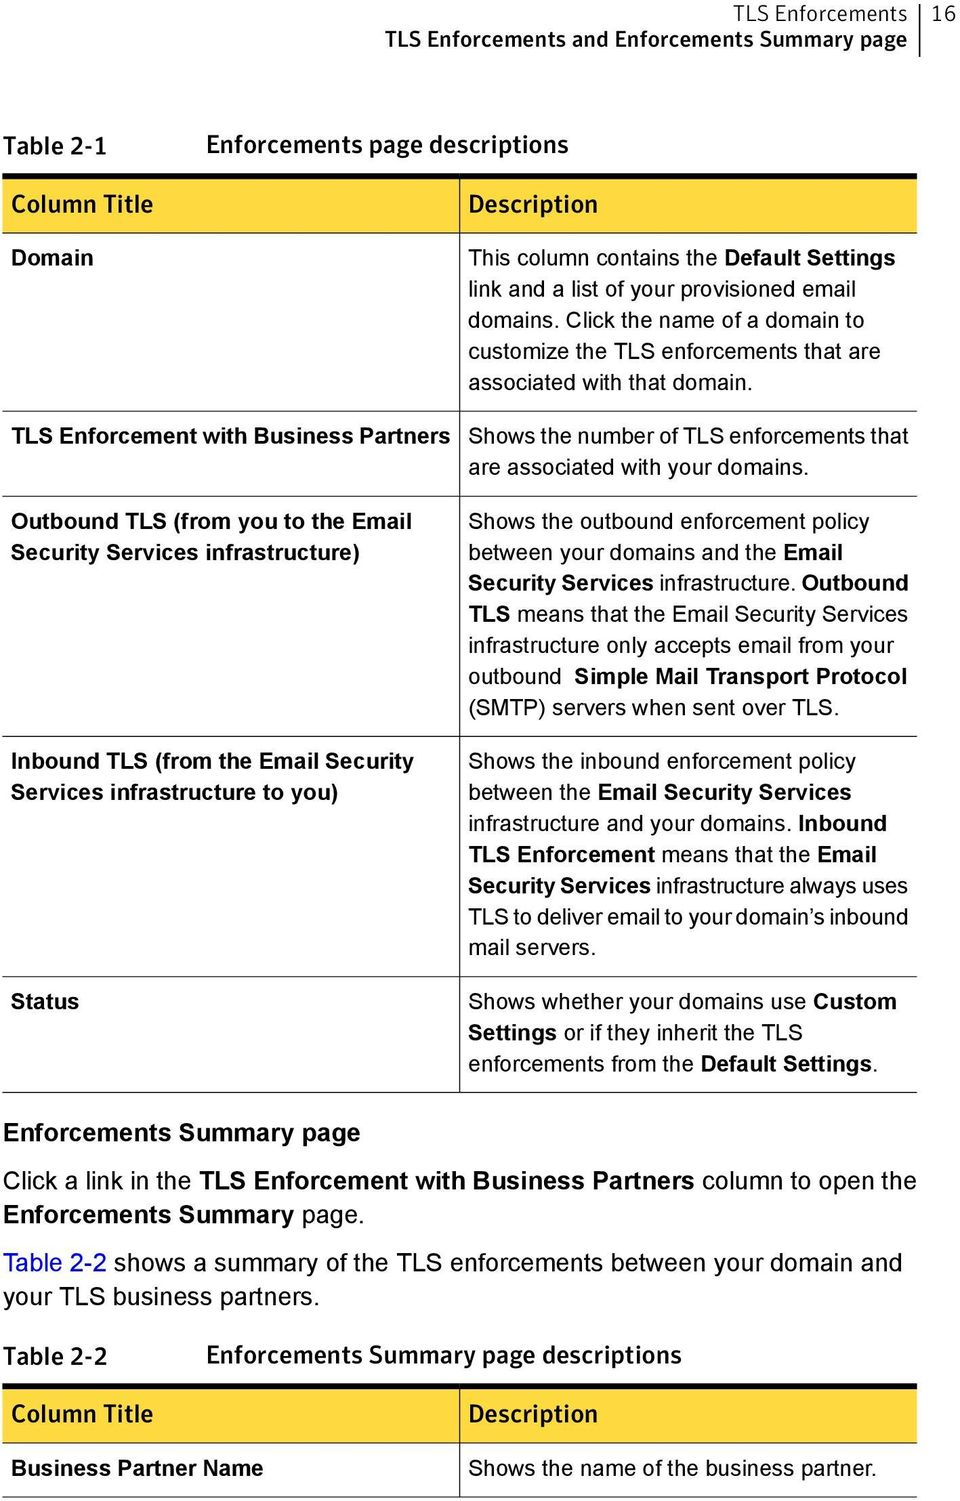 TLS Enforcement with Business Partners Outbound TLS (from you to the Email Security Services infrastructure) Inbound TLS (from the Email Security Services infrastructure to you) Status Shows the